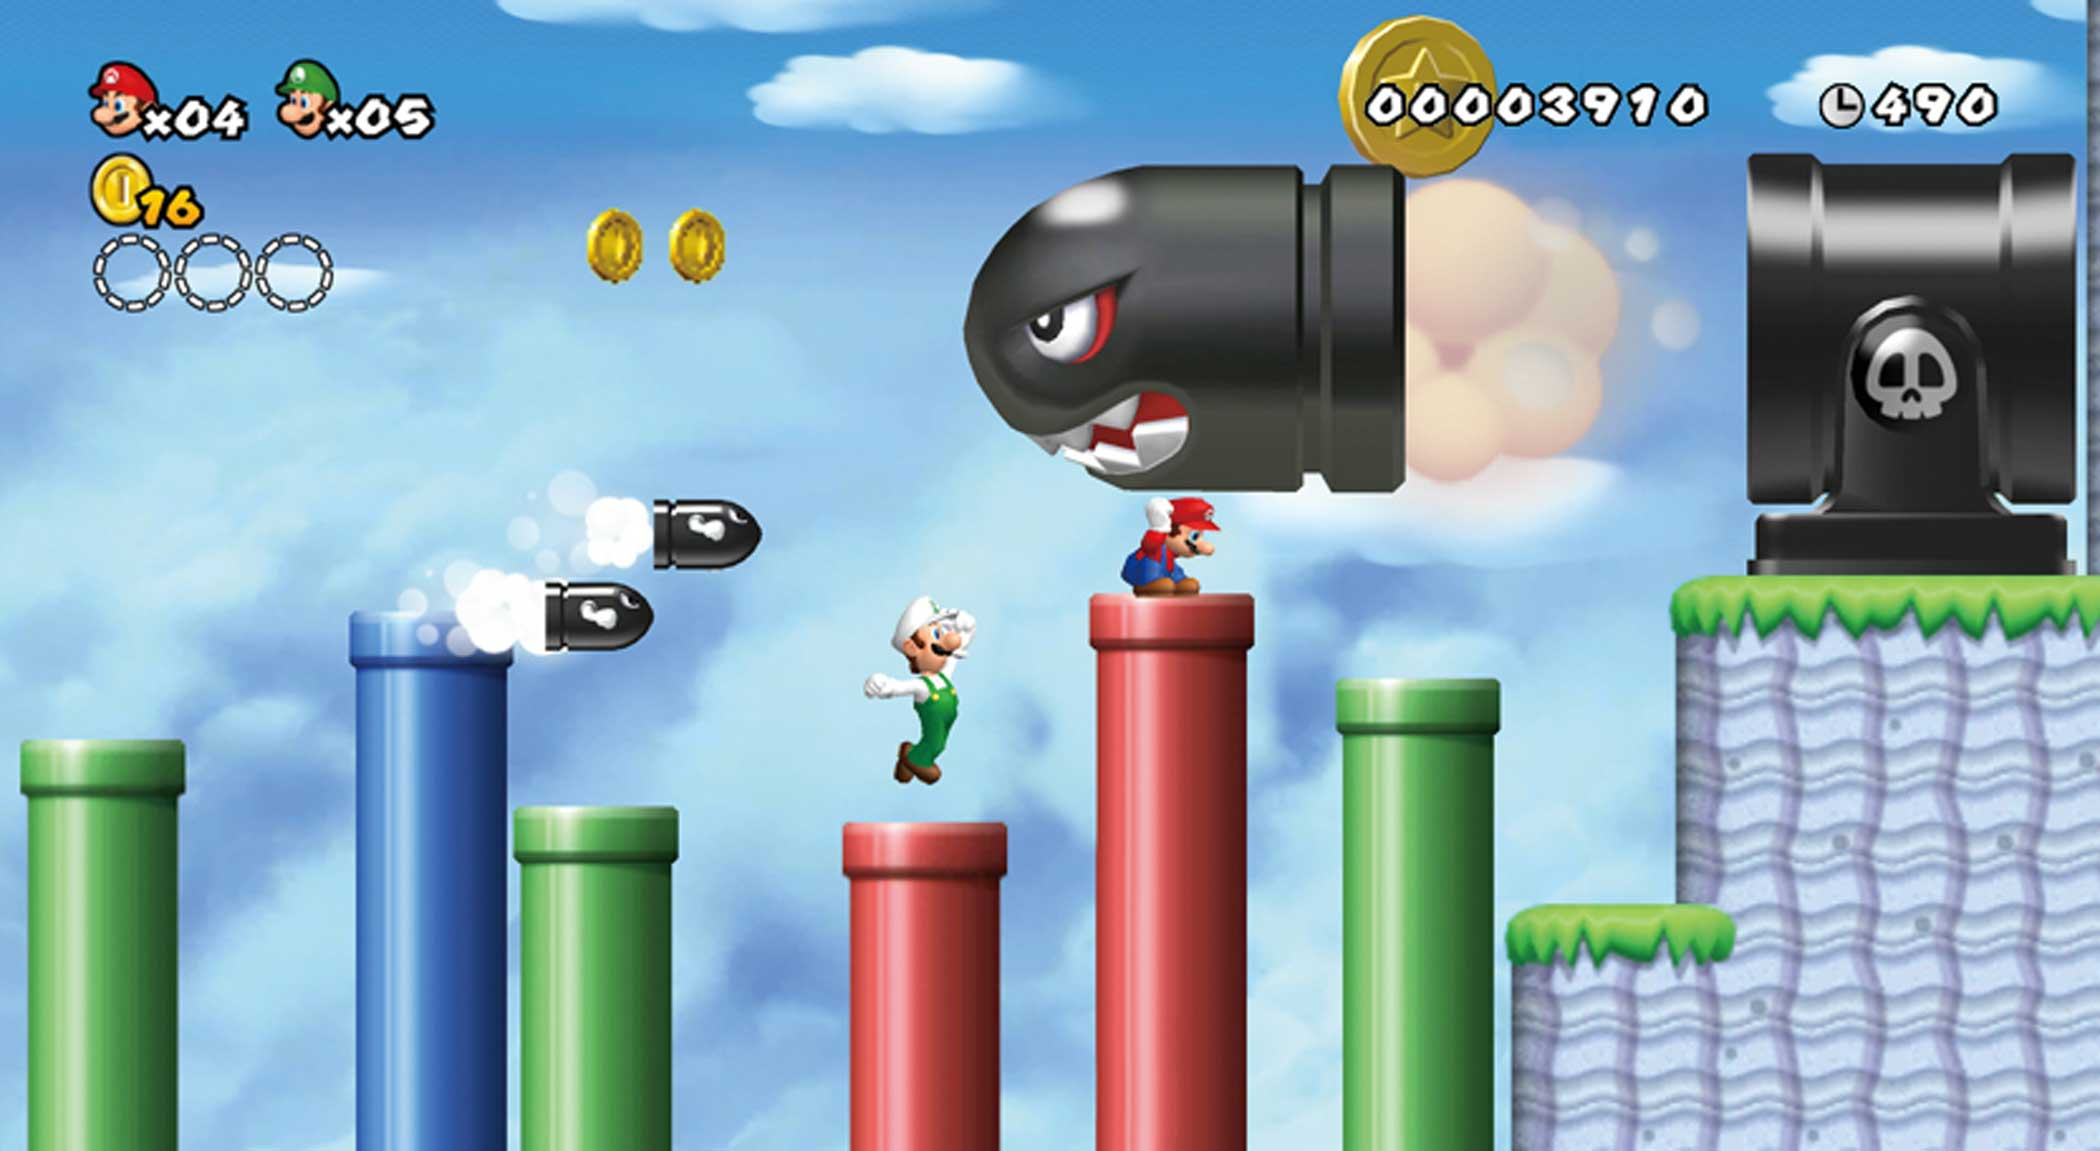 2009: New Super Mario Bros. Wii                                                              Like New Super Mario Bros. for Nintendo's DS handheld, this Wii-based sidescroller laid 3D characters and objects against 2D backdrops, but also built on the Wii's local multiplayer capabilities with 4-way cooperative play--a first for the series.